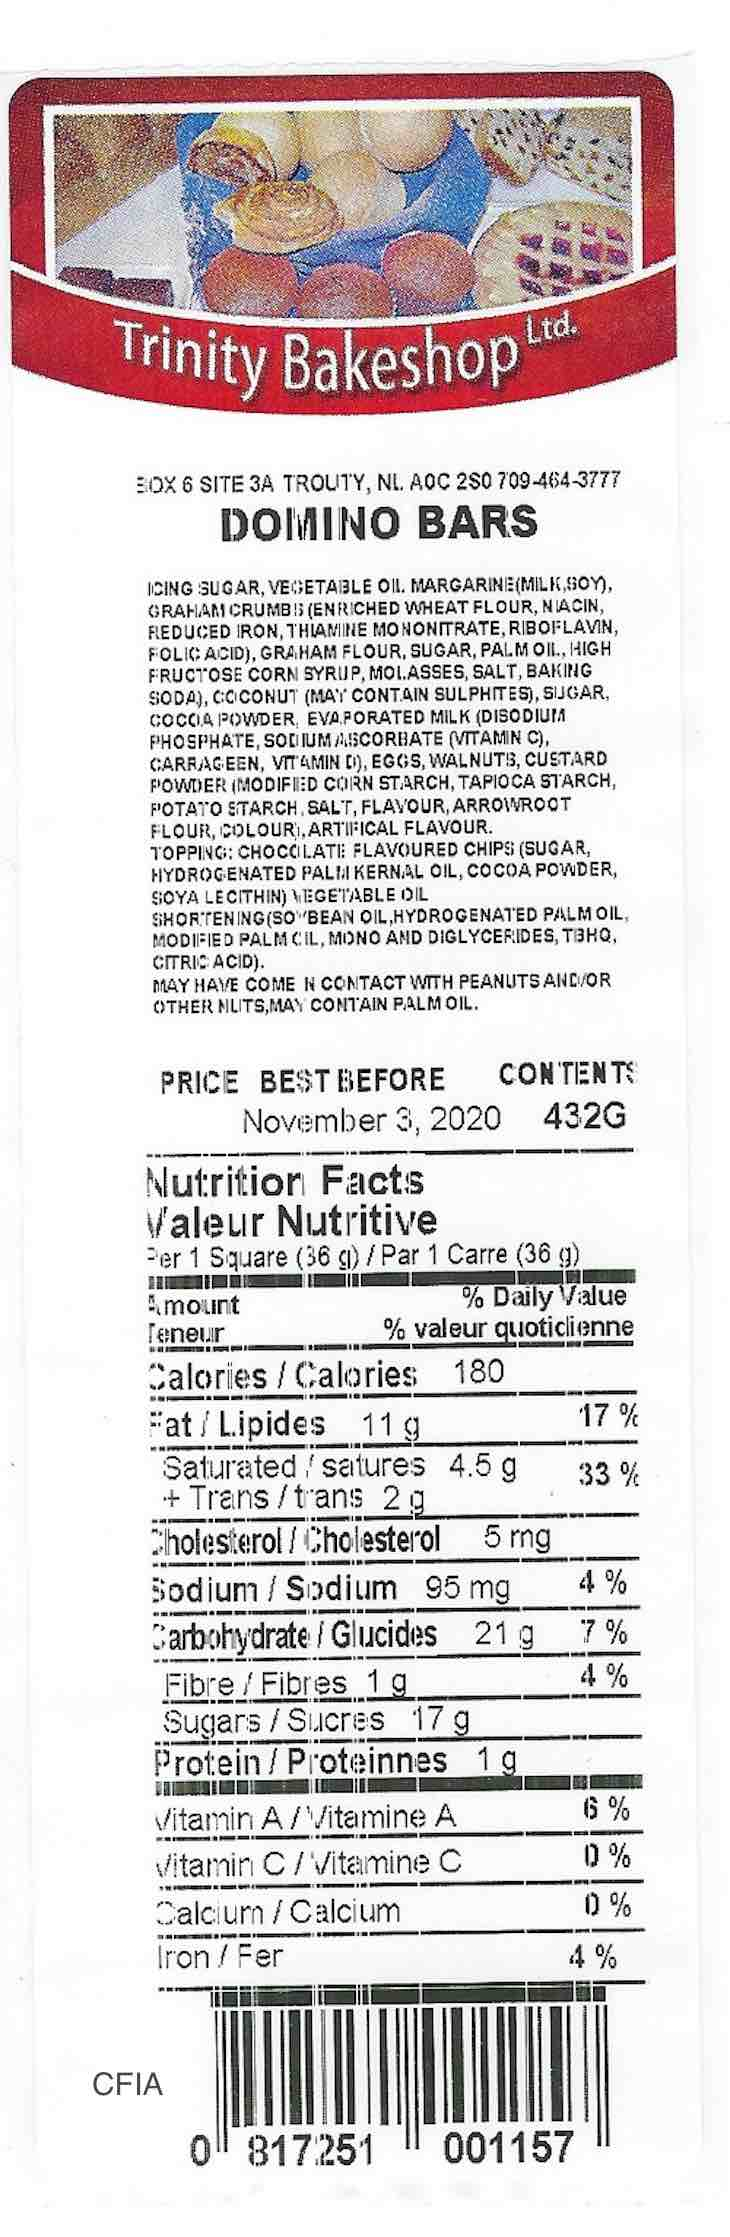 Trinity BakeShop Products Recalled in Canada For Salmonella